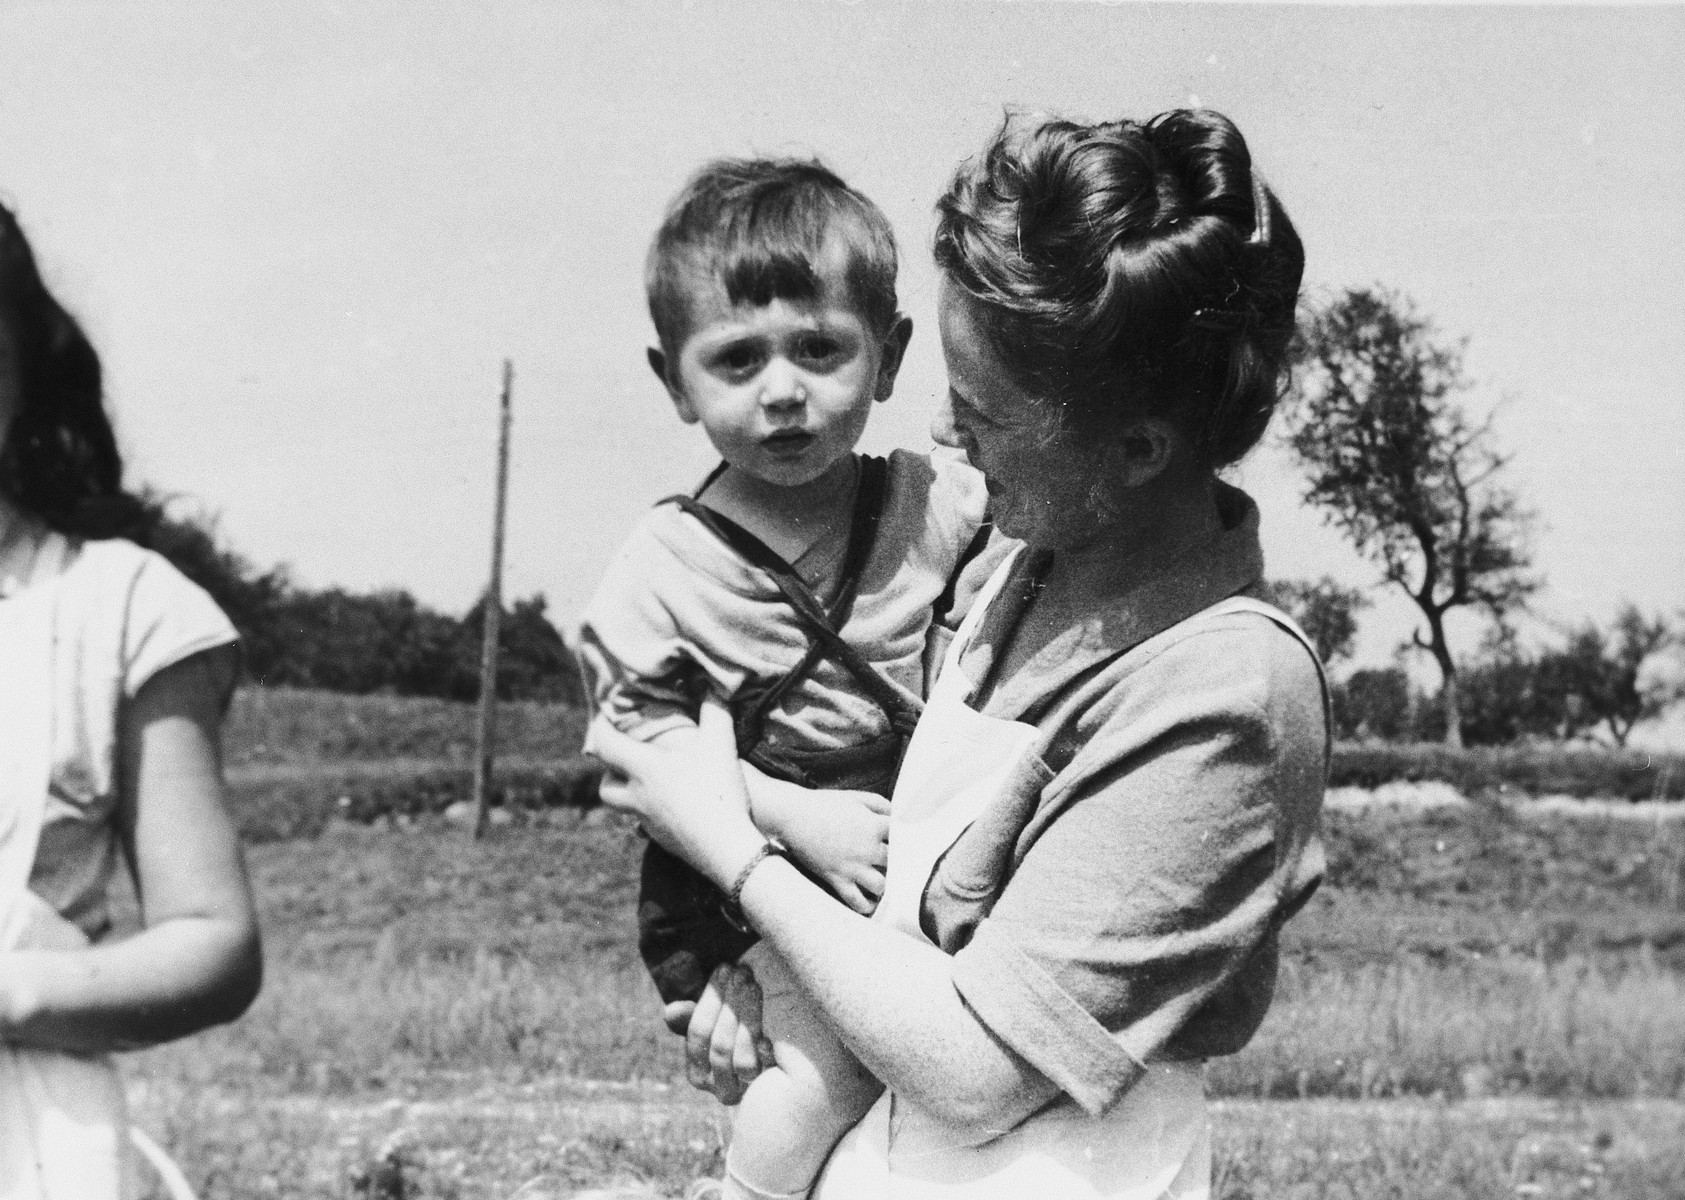 A woman poses holding a child in a field at a Jewish displaced persons camp in Austria (probably Bindermichl).